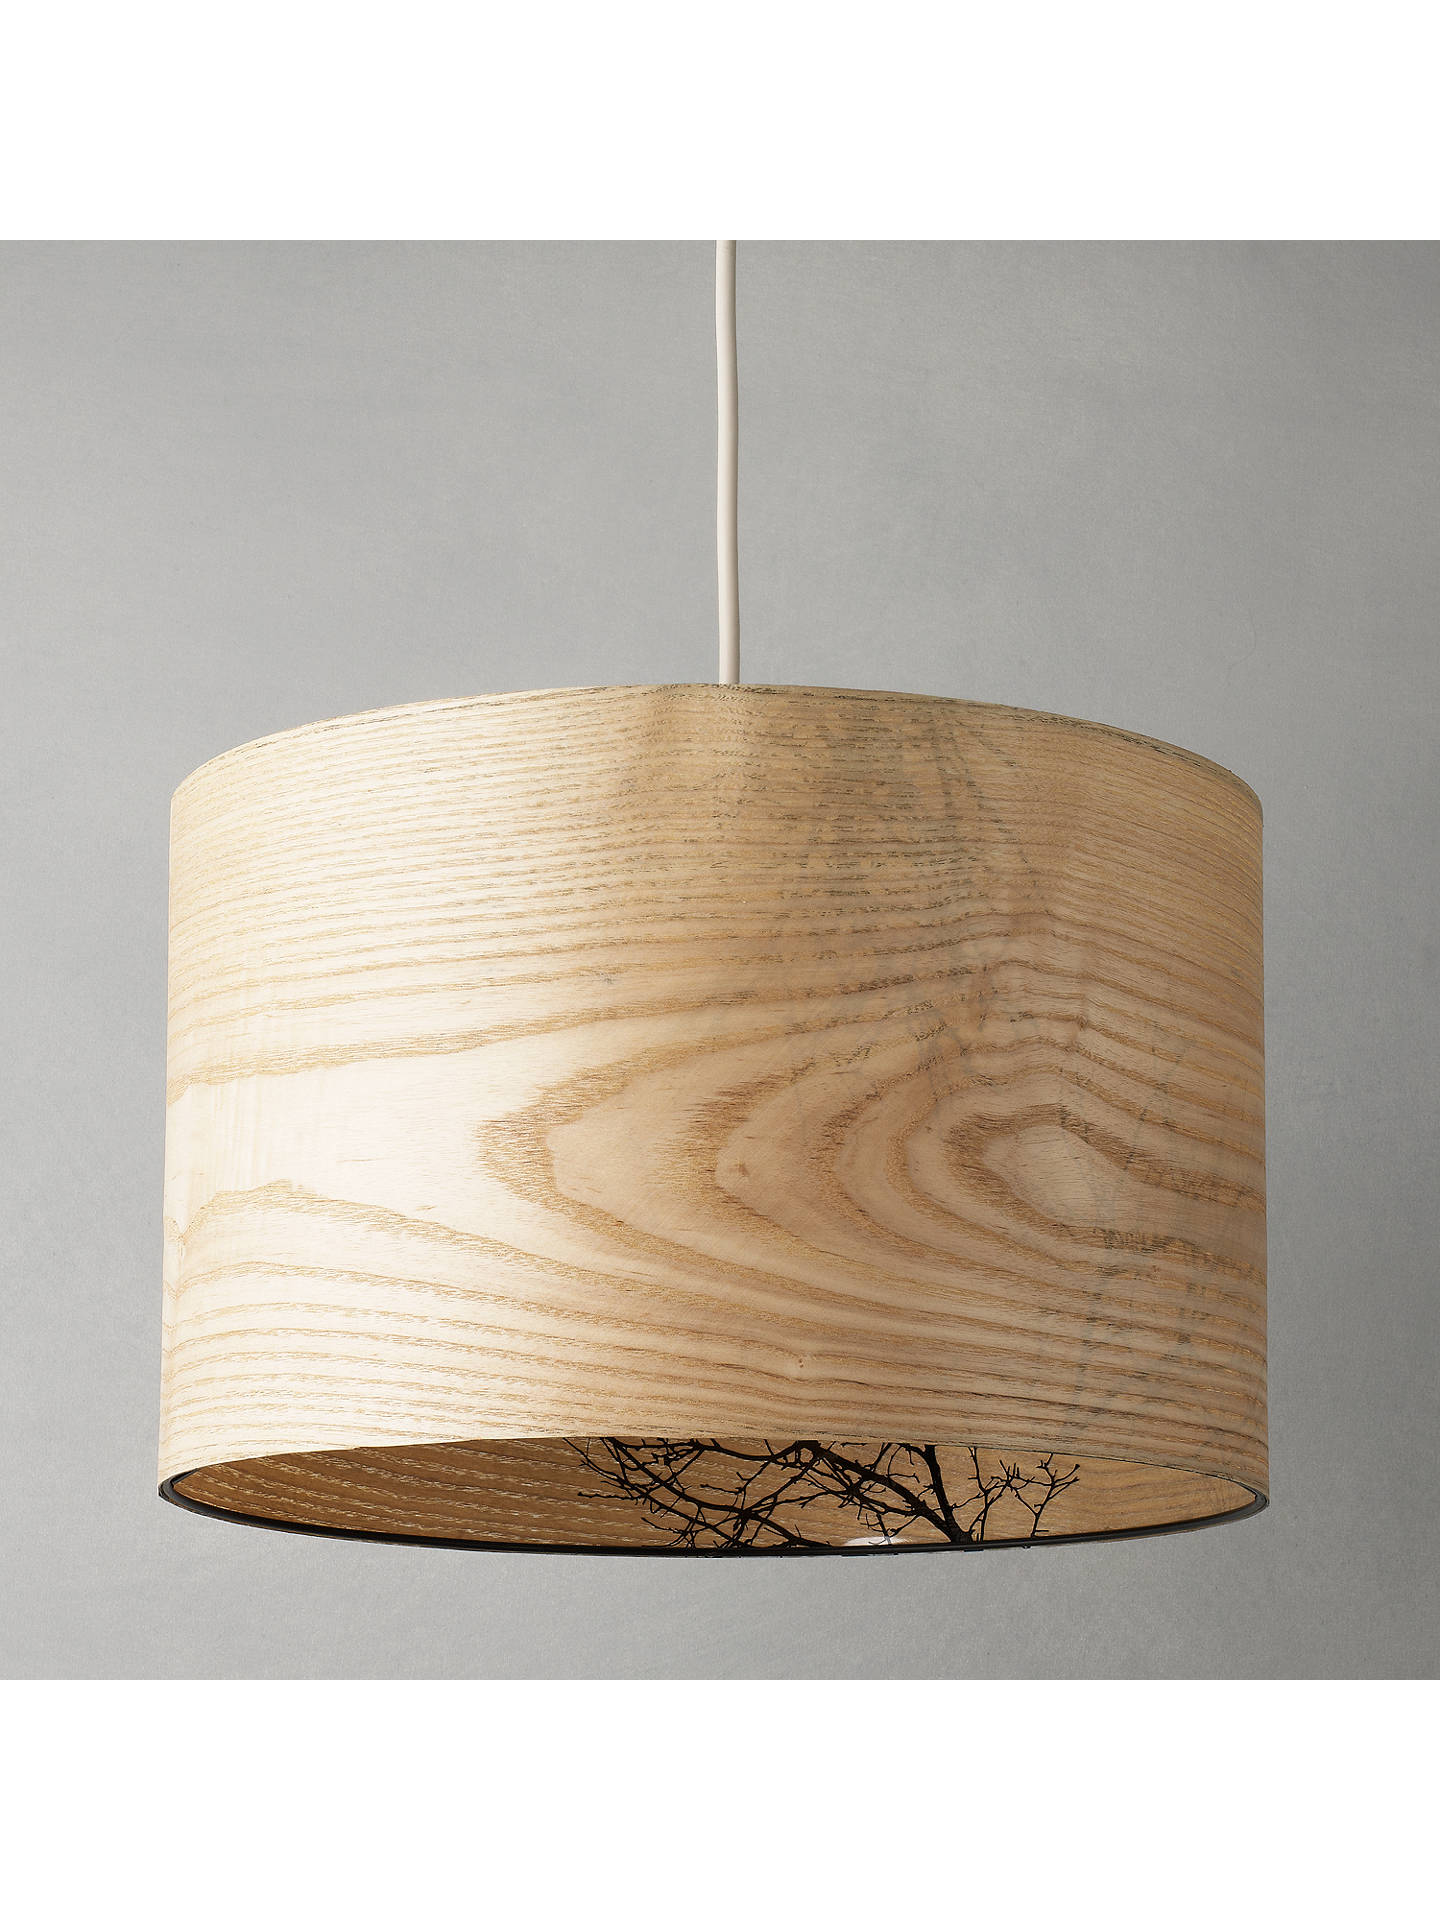 BuyJohn Lewis & Partners Woodland Drum Shade, Dia.25cm Online at johnlewis.com